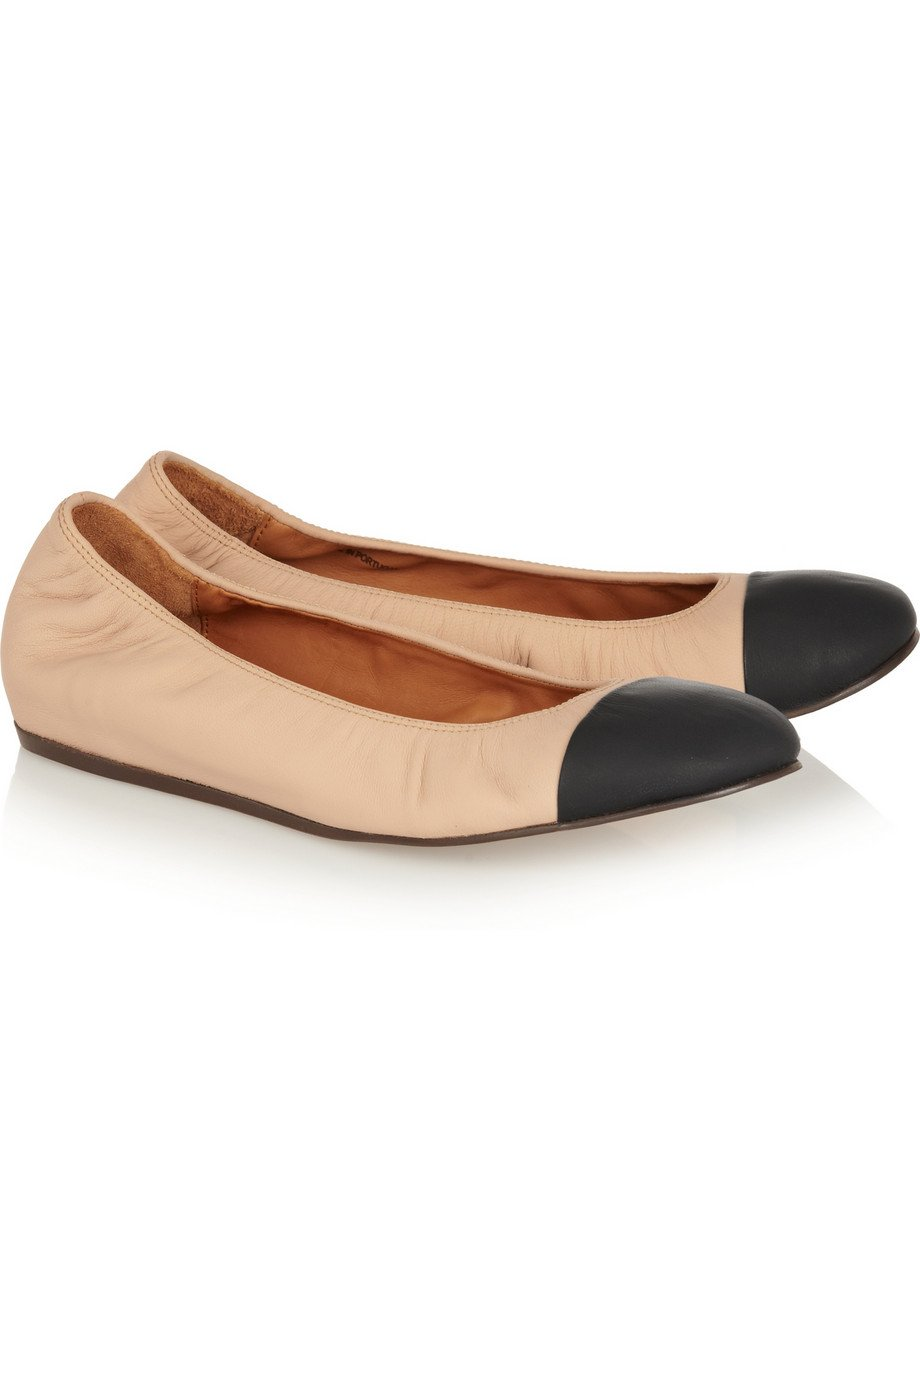 5a2b2d88bd8f Lyst - Lanvin Two-Tone Leather Ballet Flats in Natural